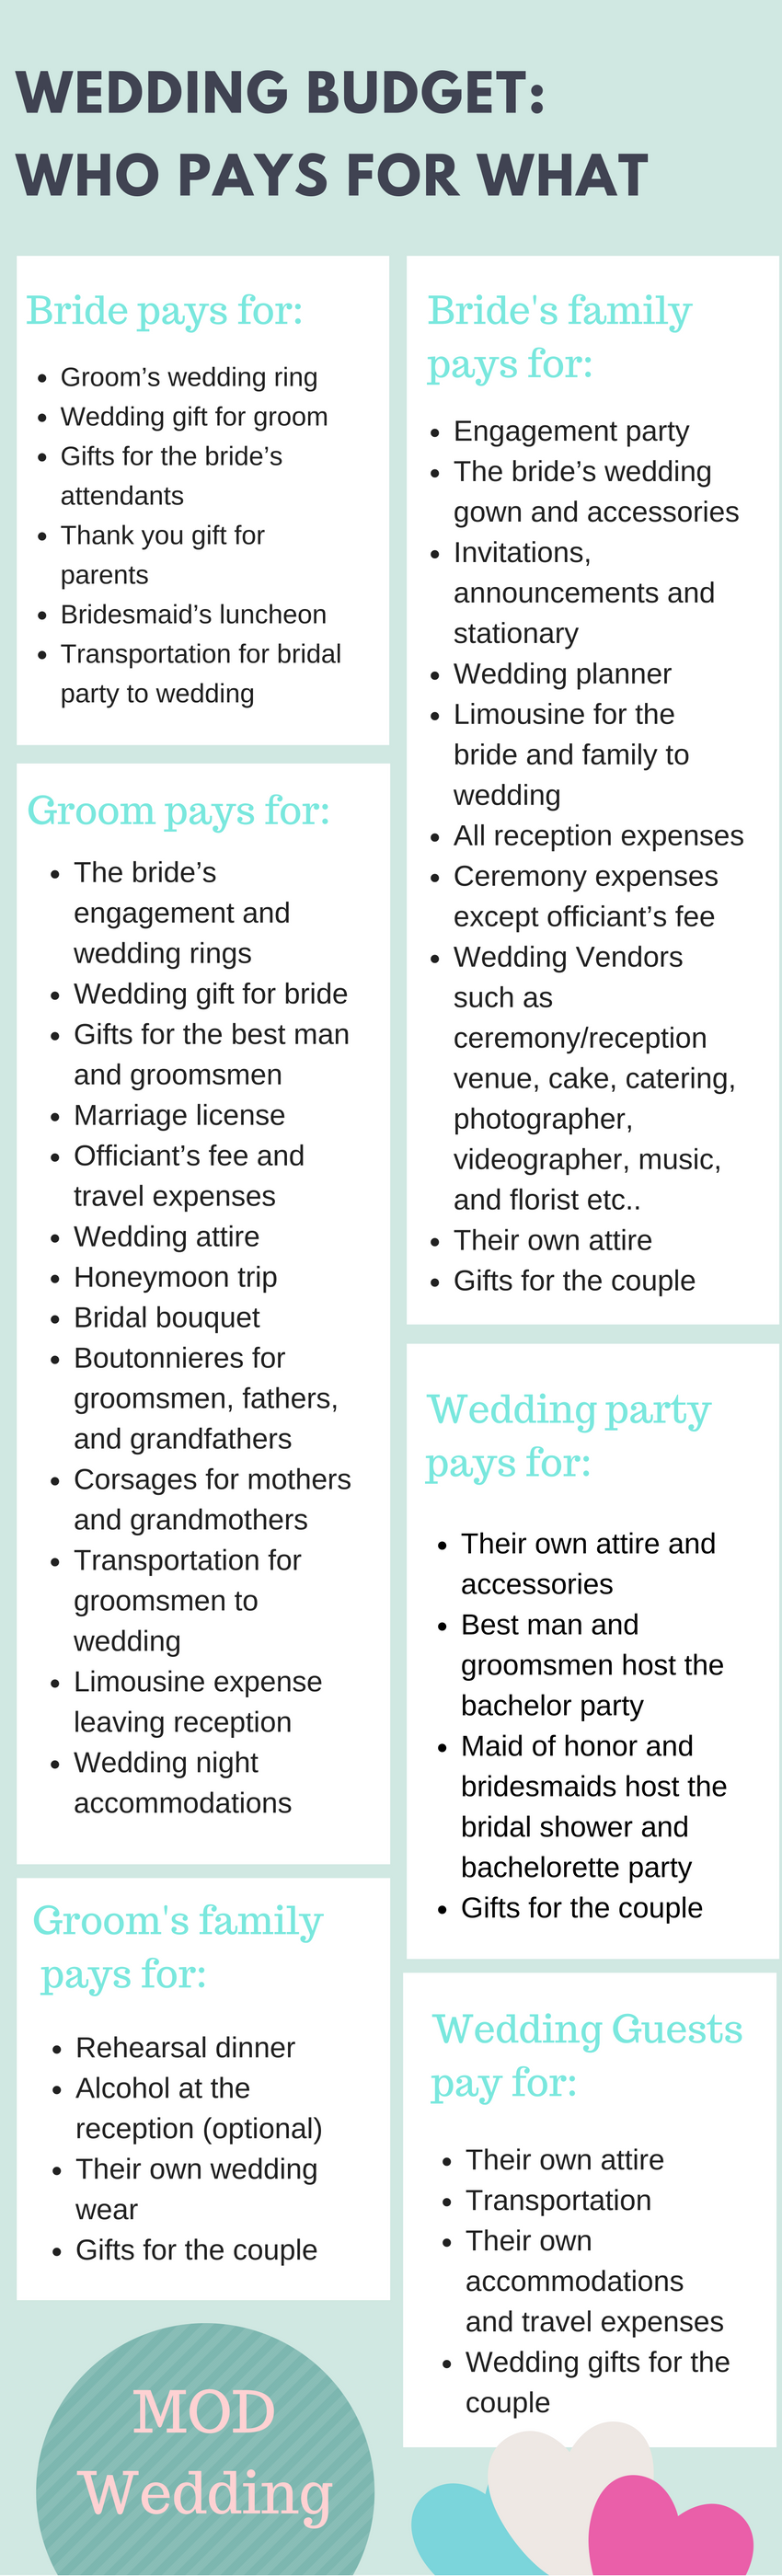 Wedding Budget Who Pays For What